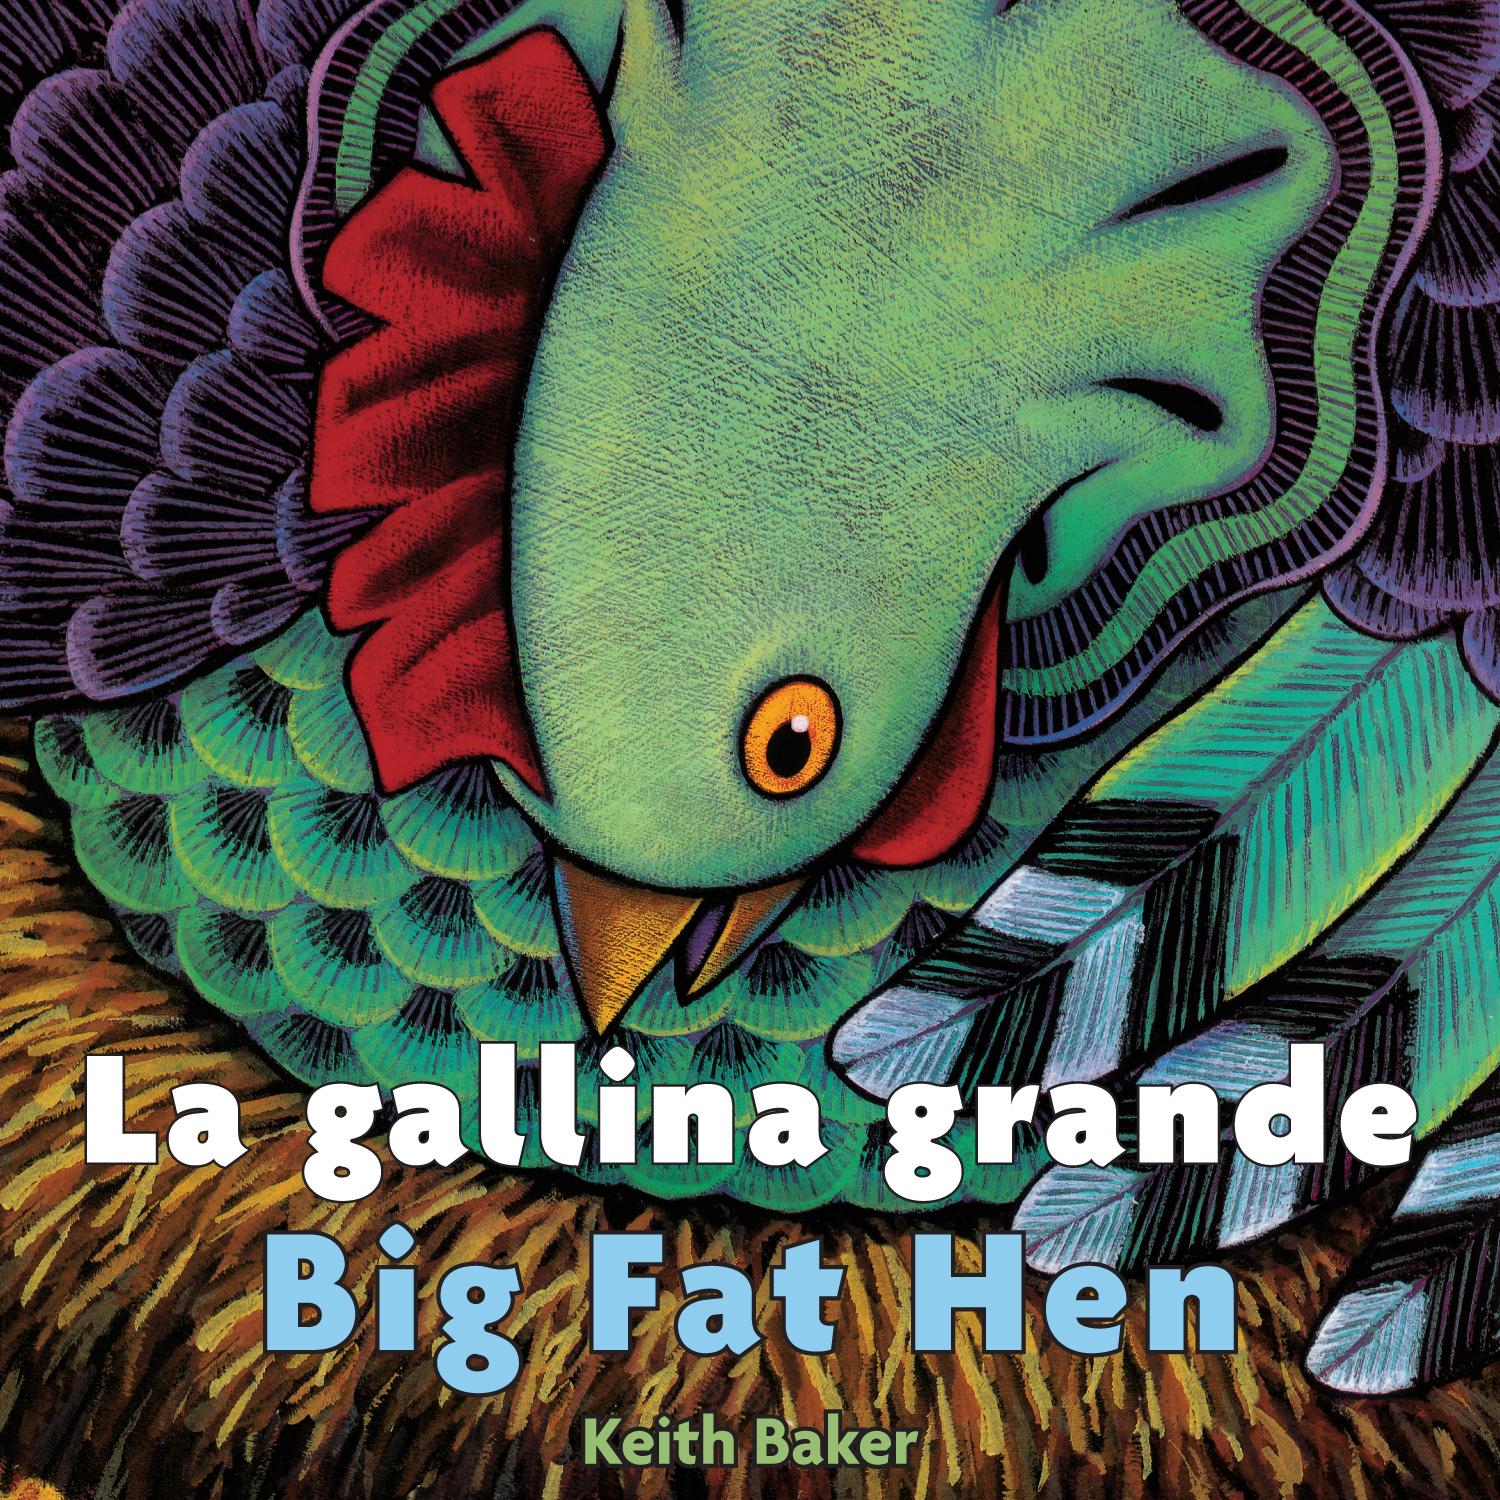 La gallina grande/Big Fat Hen bilingual board book-9780544173989